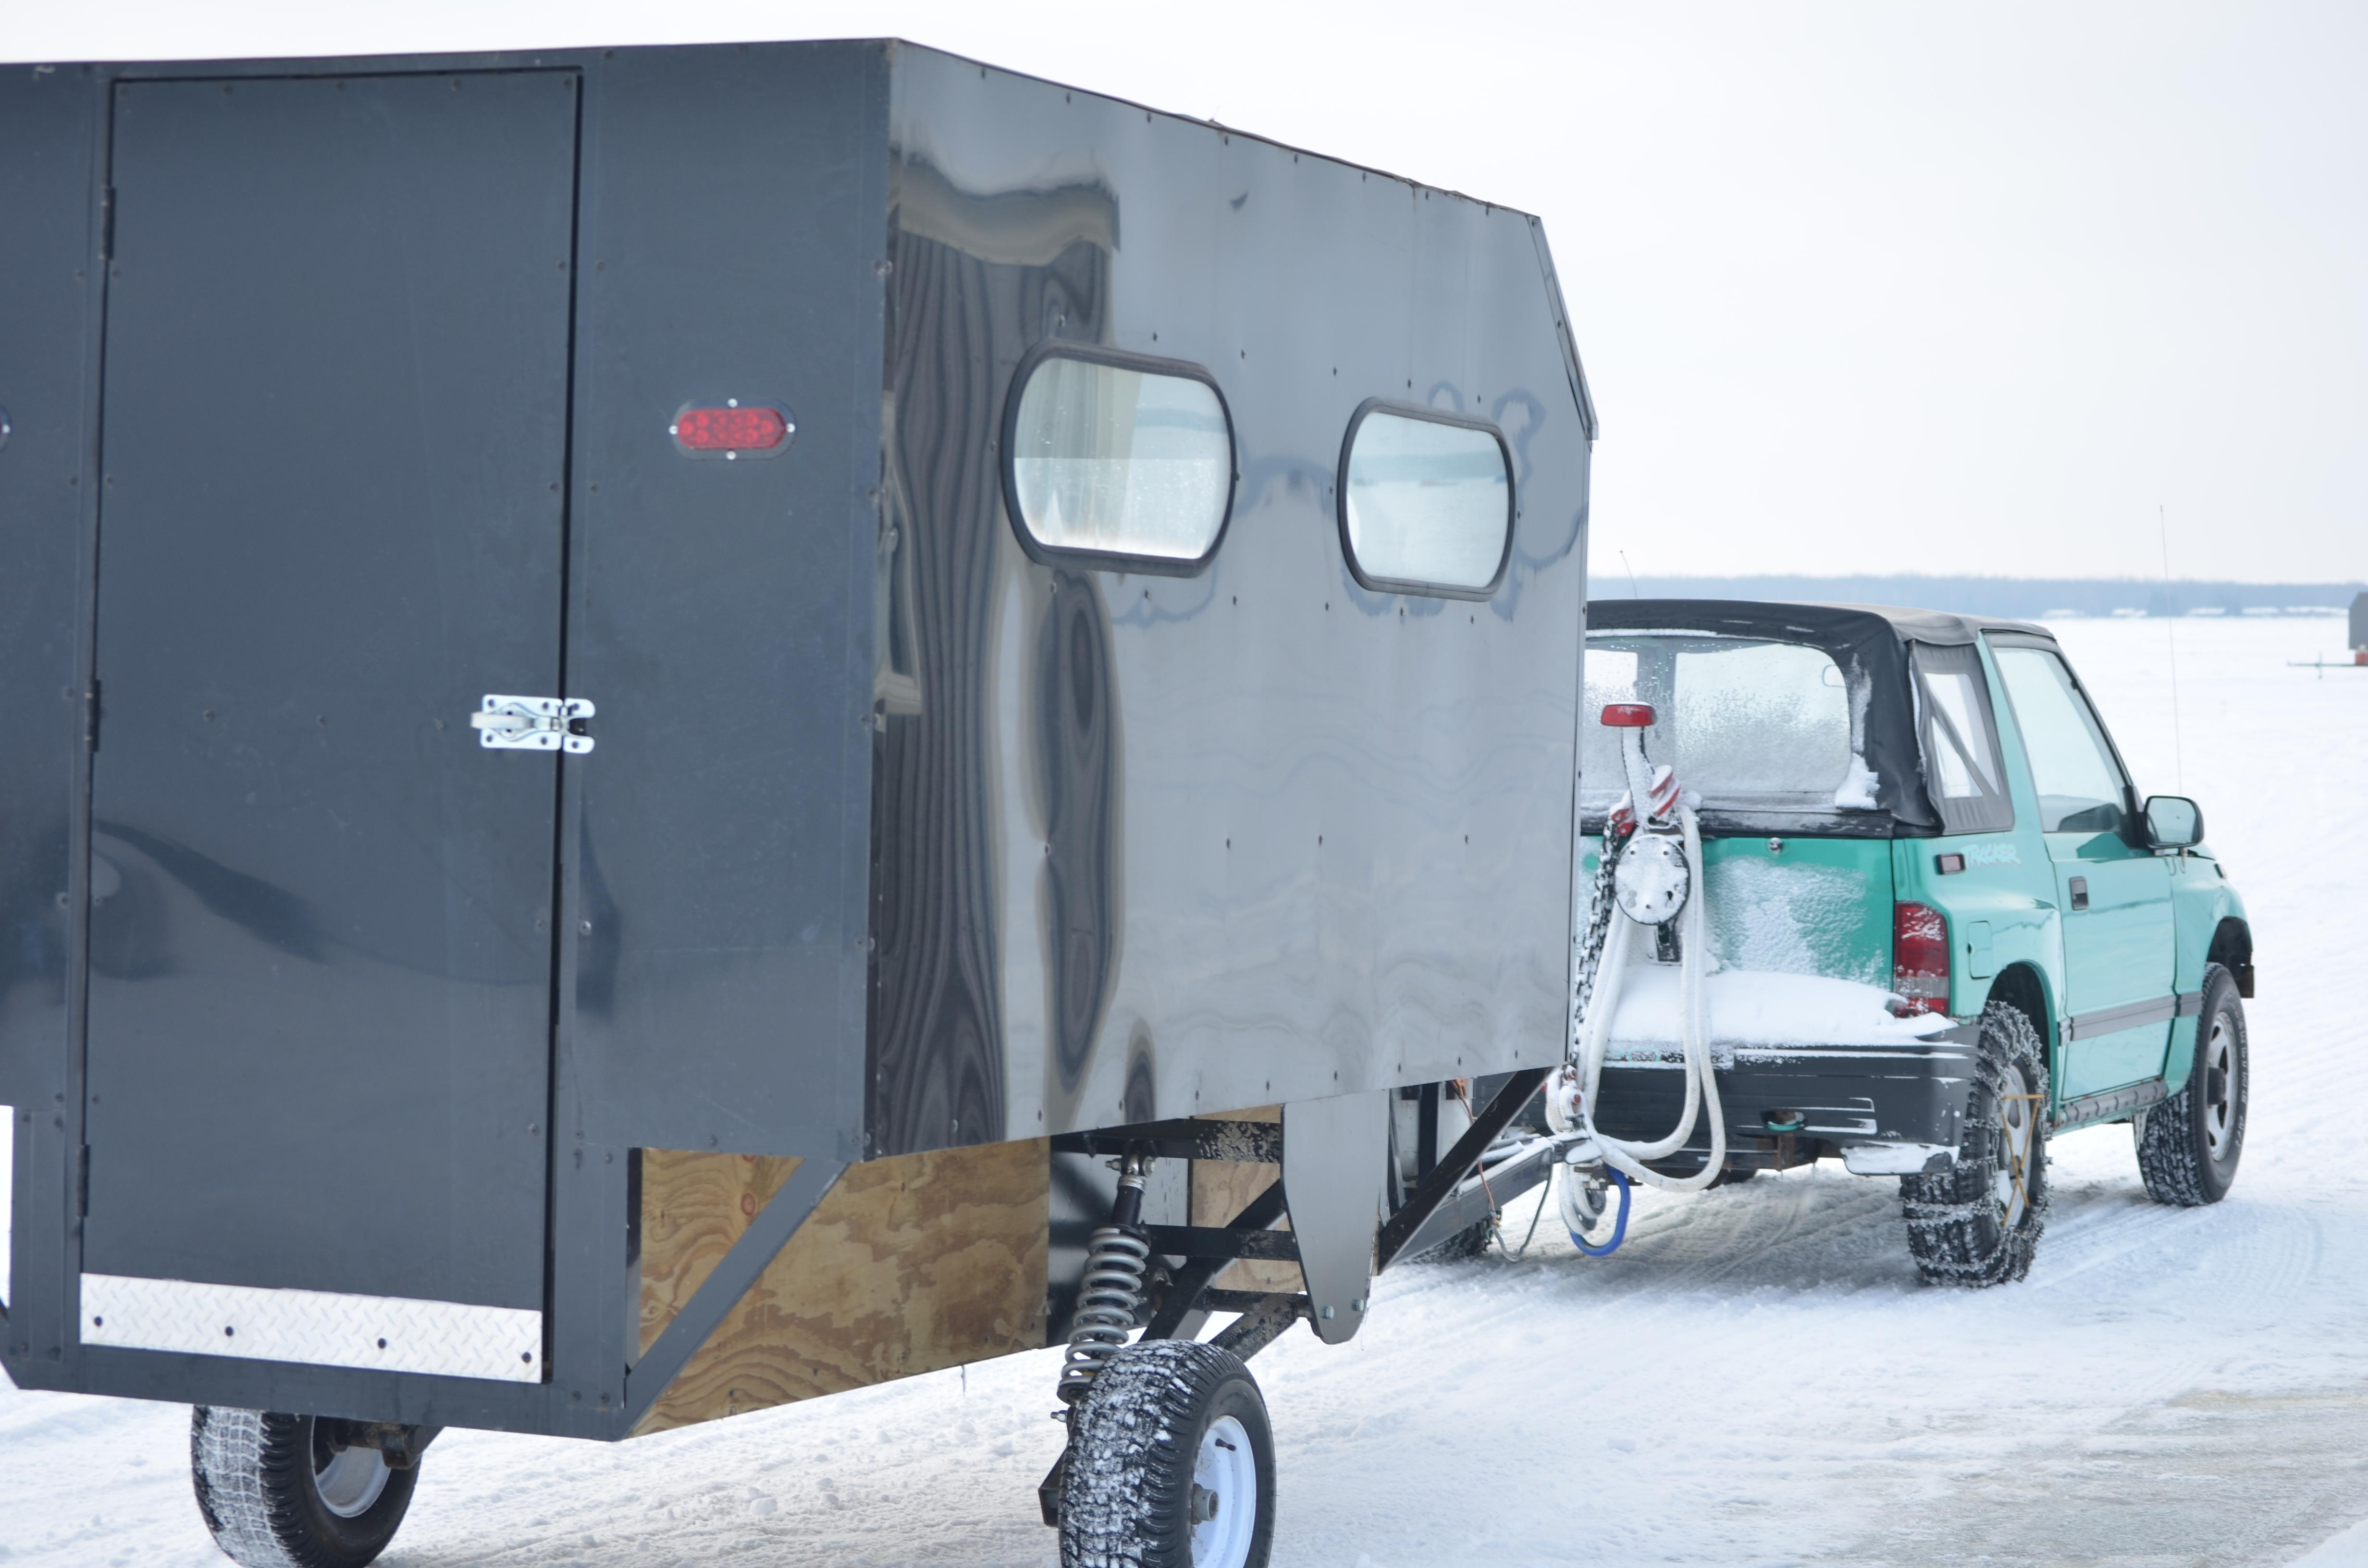 light-ice-rig-with-people-hauler-trailer_cyrus-resort